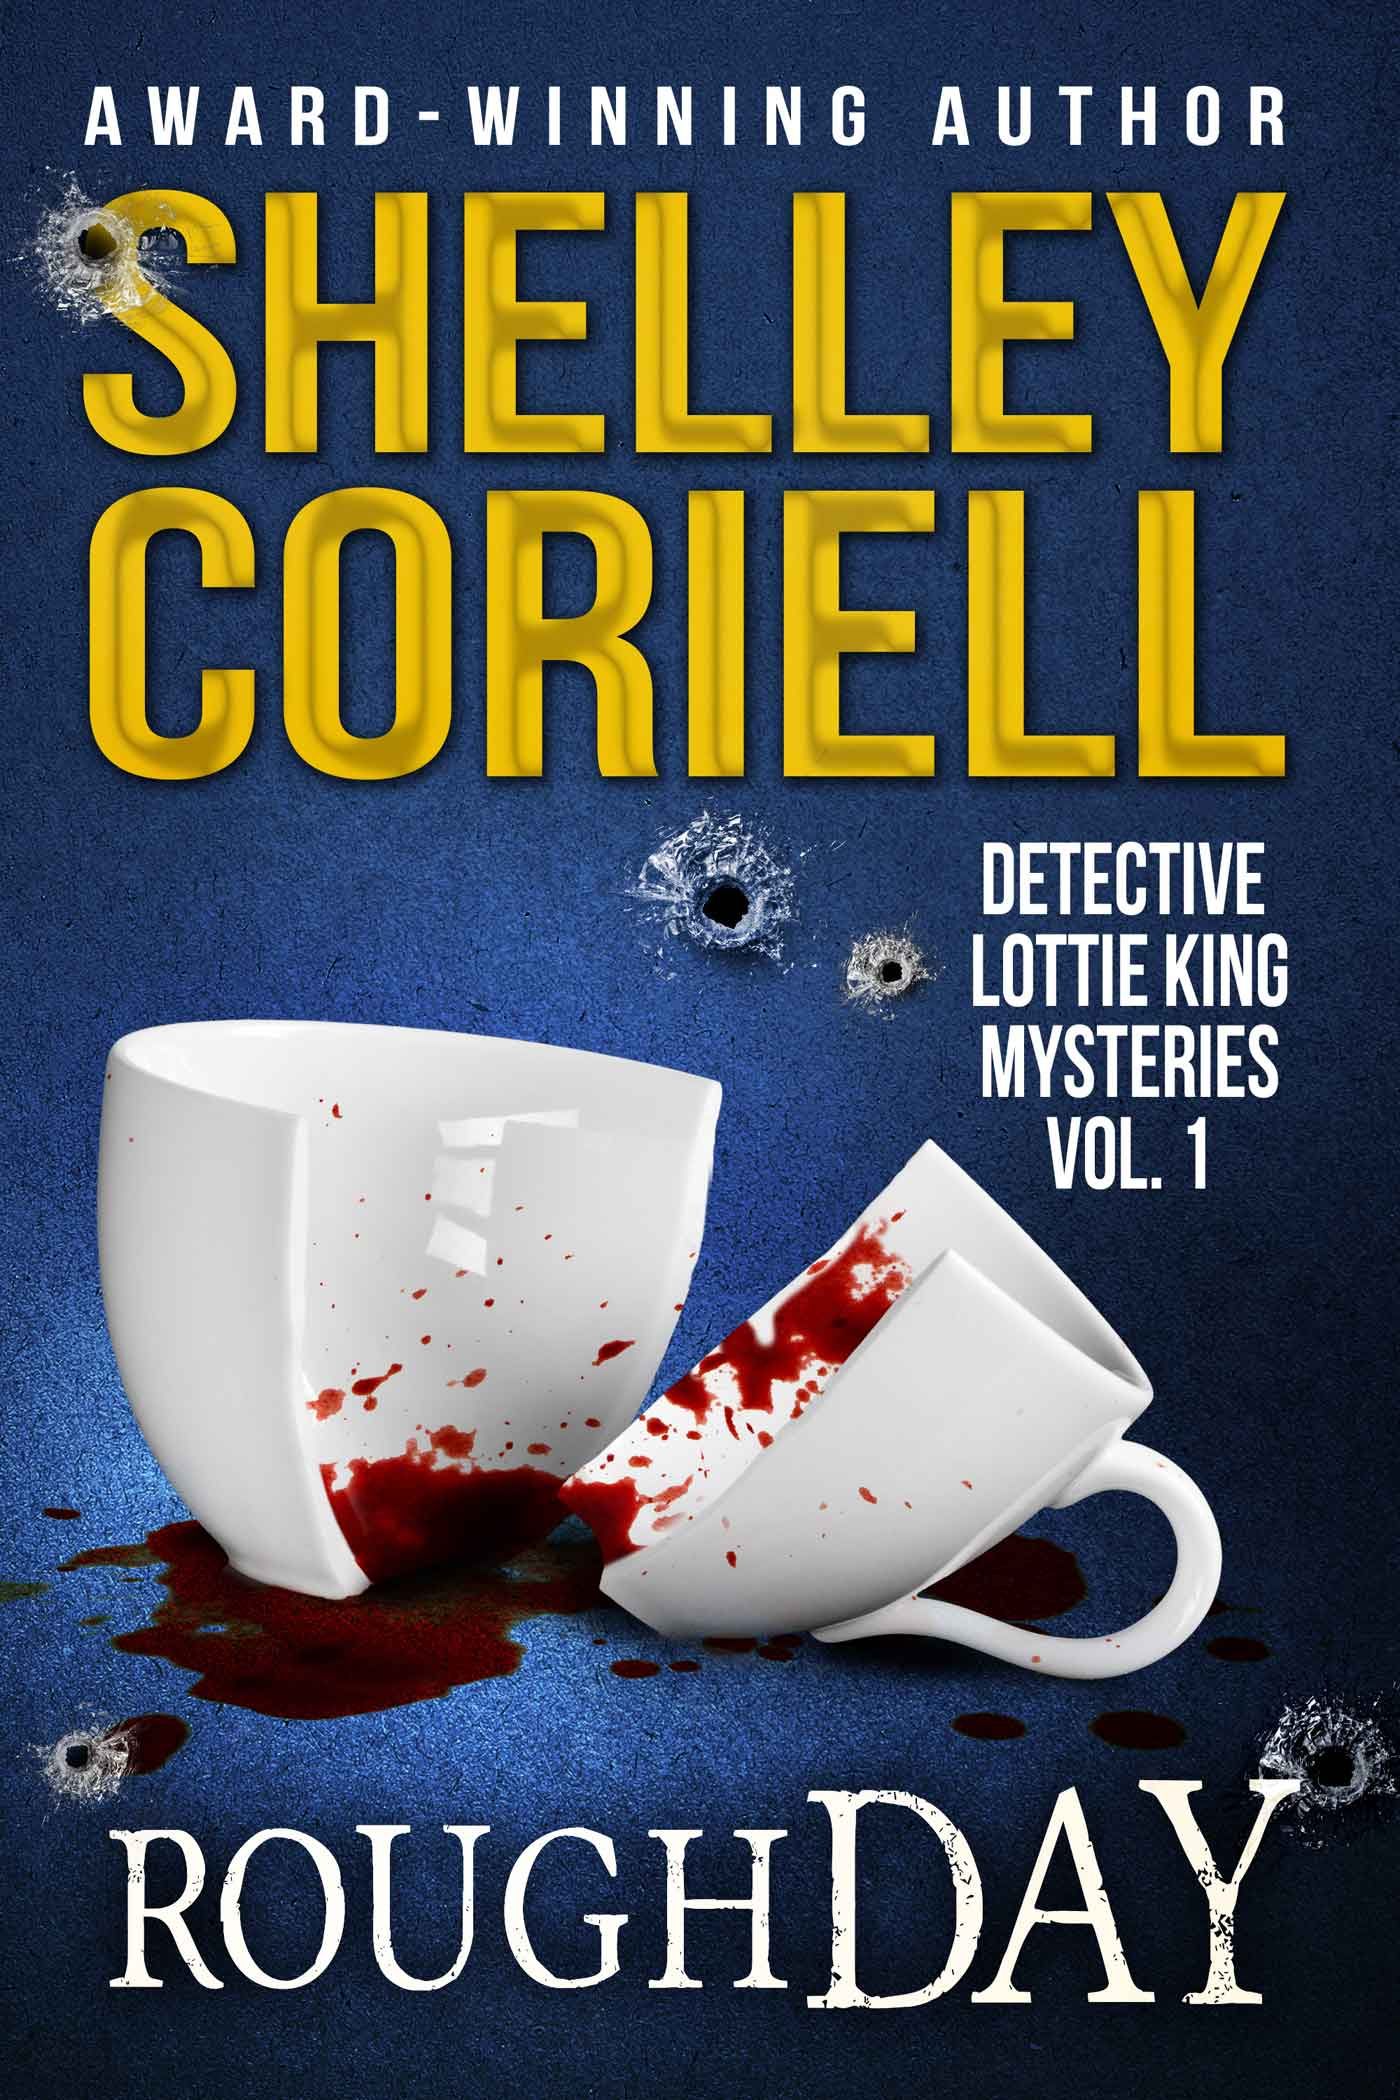 Rough Day (Detective Lottie King* Mysteries, Vol. 1) a mystery anthology by Shelley Coriell, published by Winter Pear Press